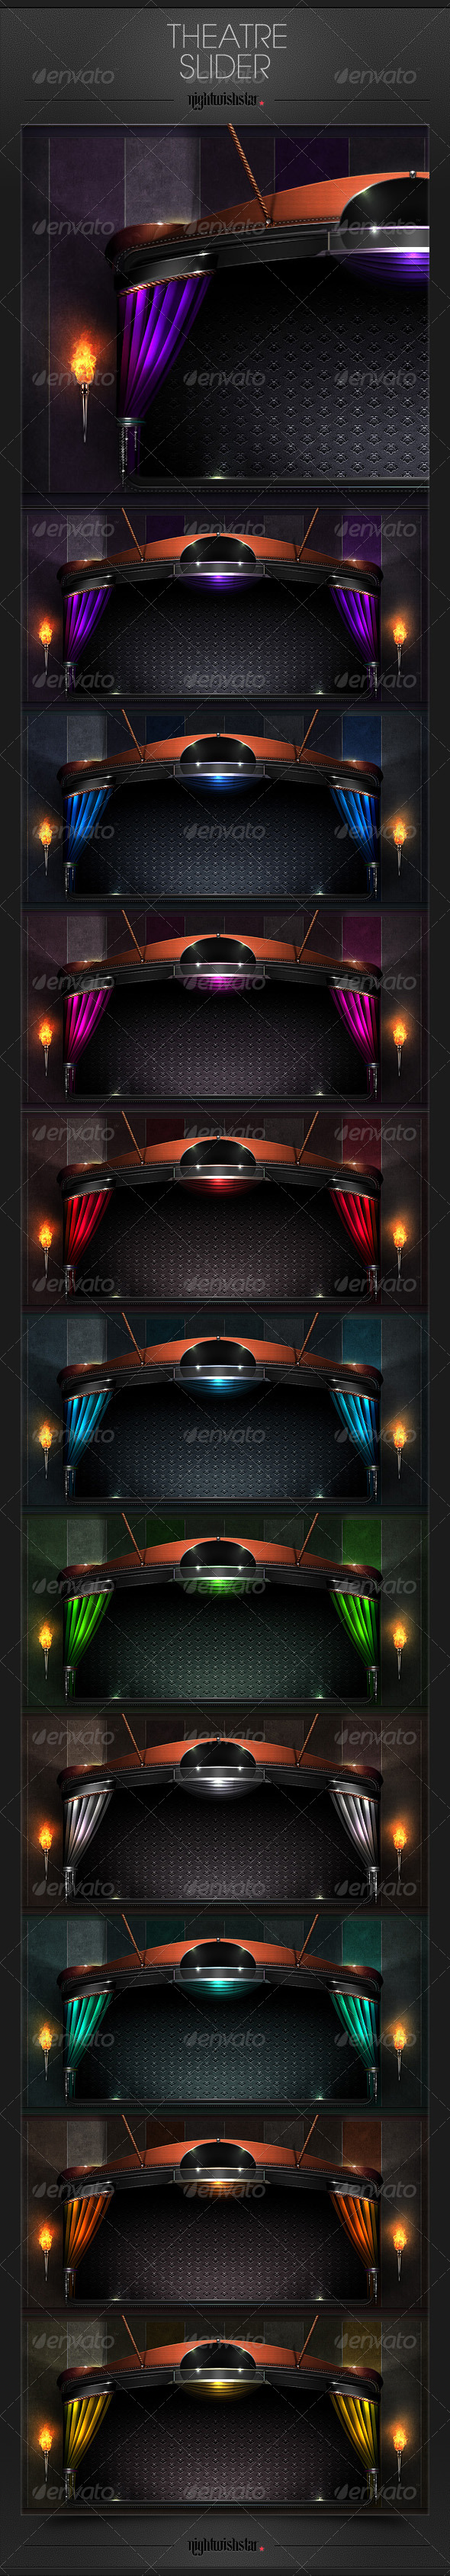 GraphicRiver Theatre Slider 6584960